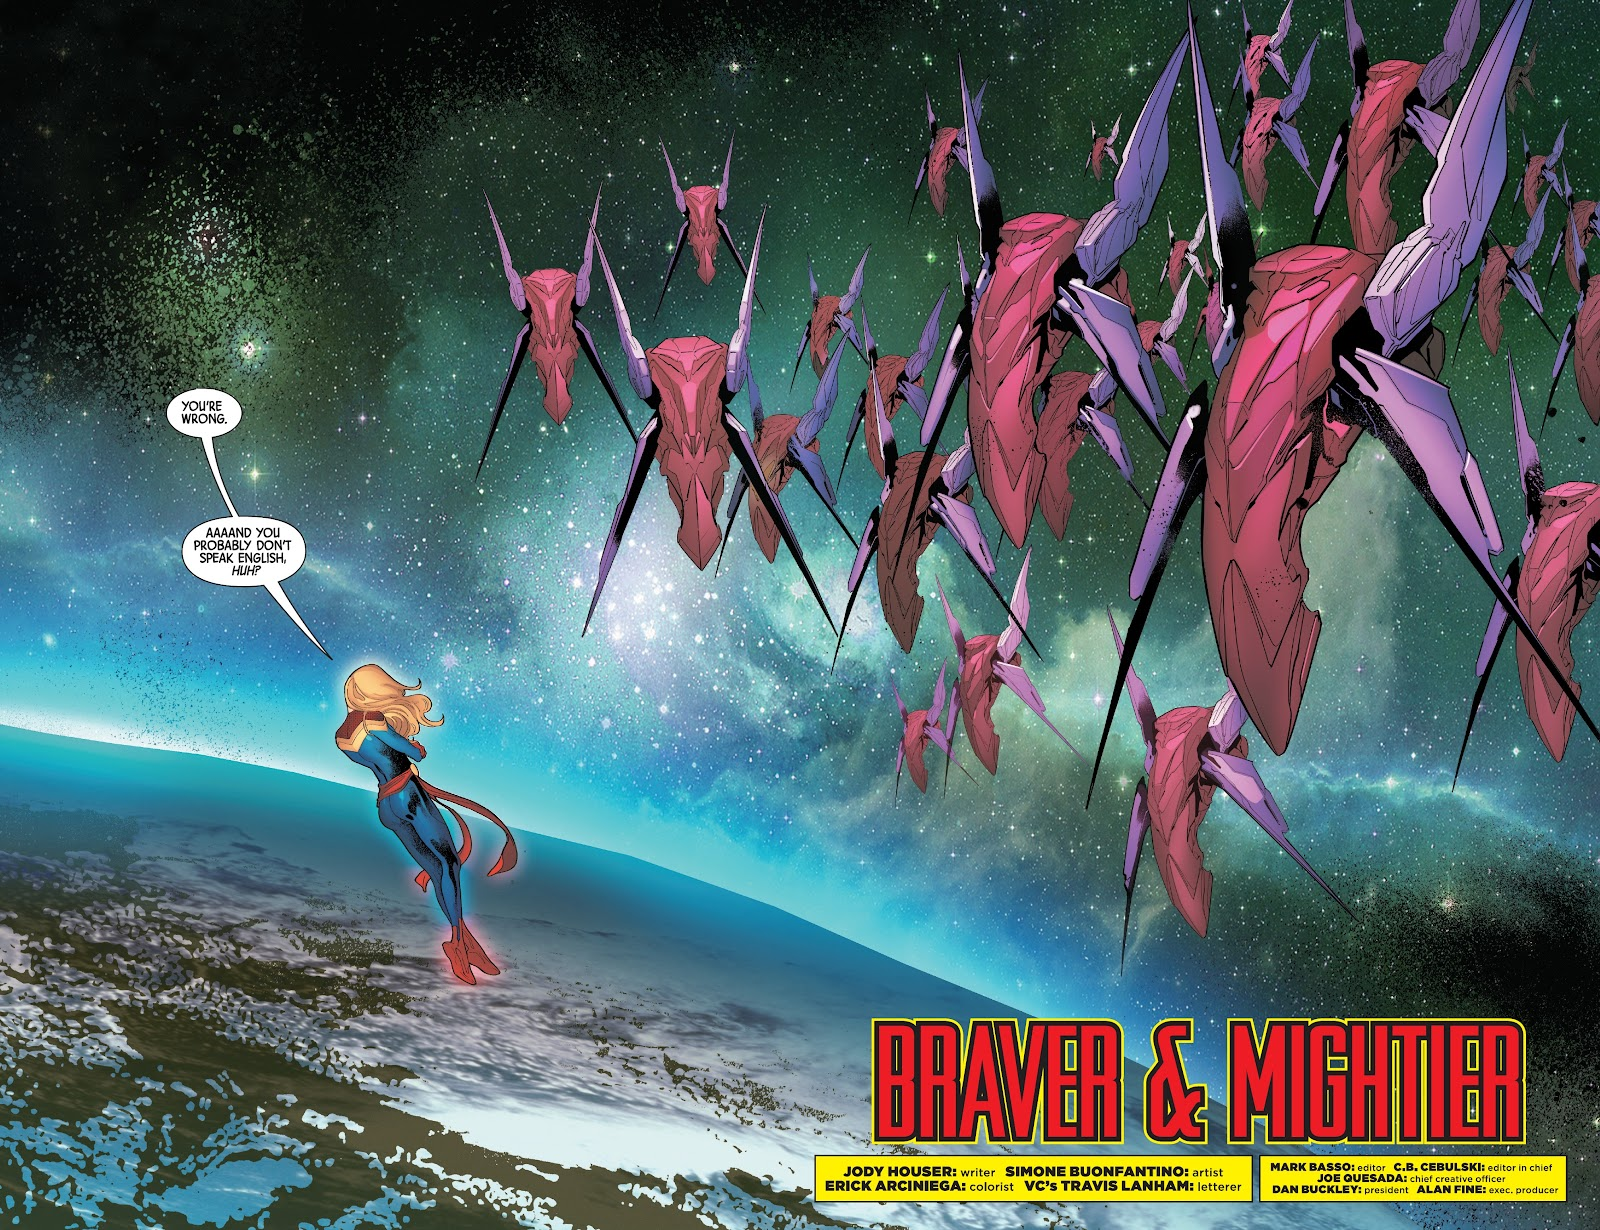 Read online Captain Marvel: Braver & Mightier comic -  Issue #1 - 4